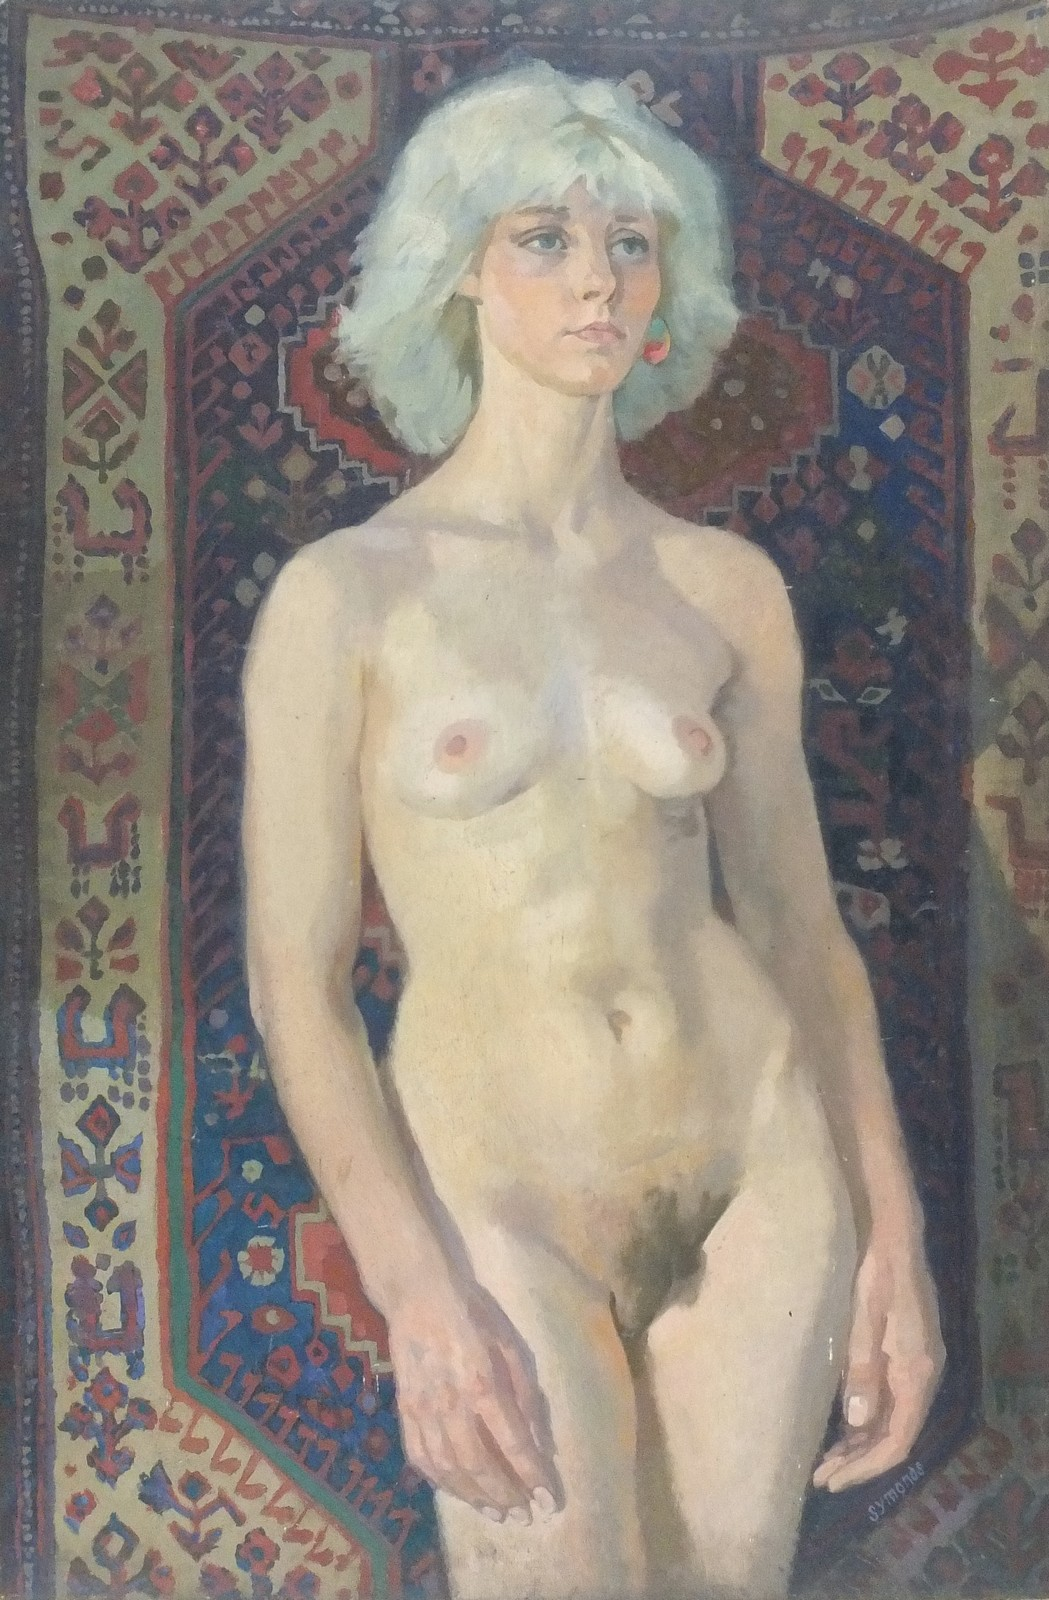 Lot 30 - * Ken SYMONDS (1927-2010), Oil on board, 'Kathy standing against rug', Inscribed to verso, Signed,